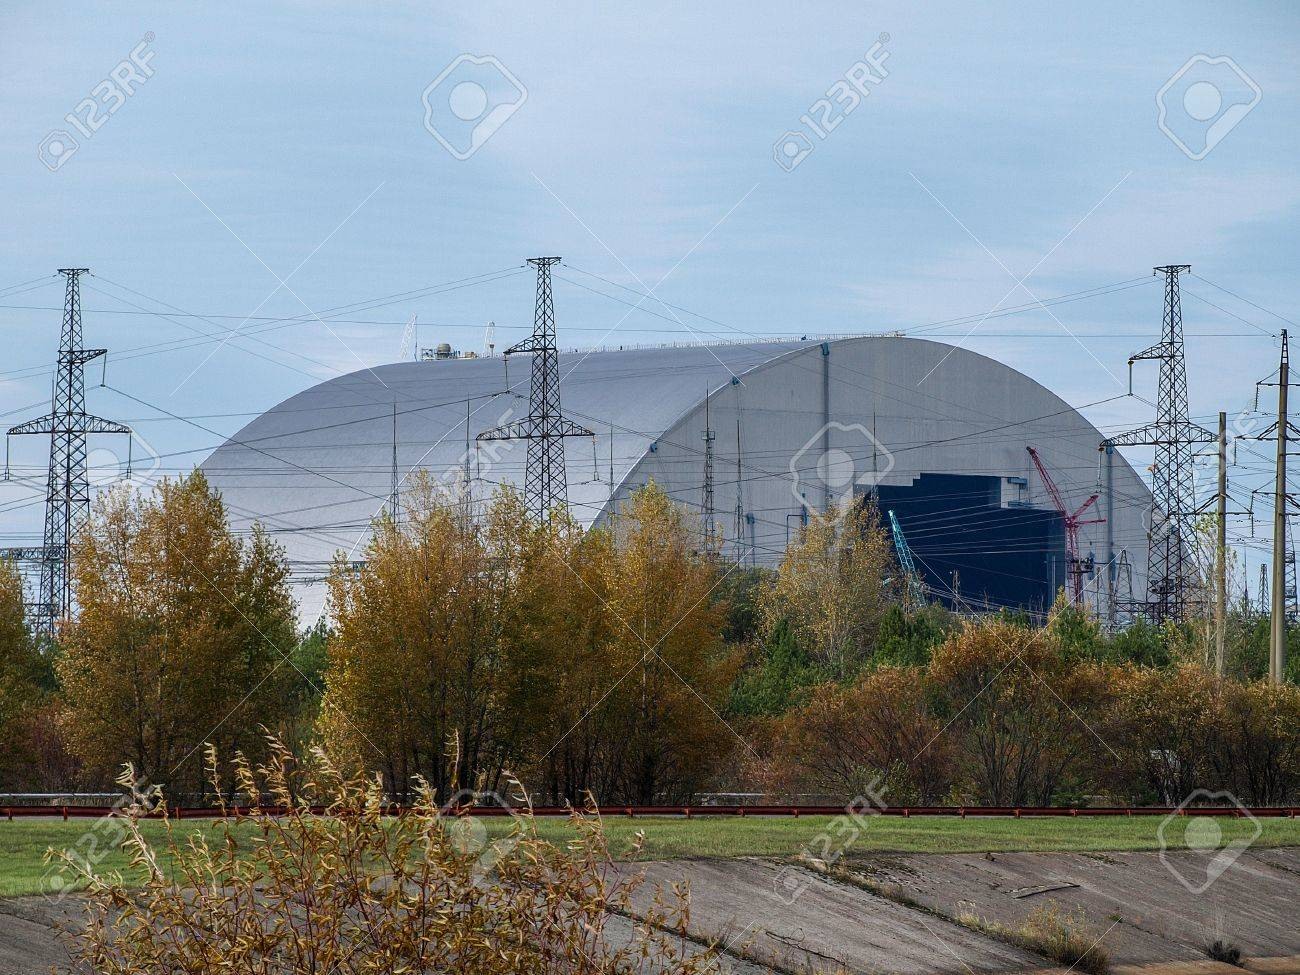 New sarcophagus for the reactor block 4 of the Chernobyl nuclear